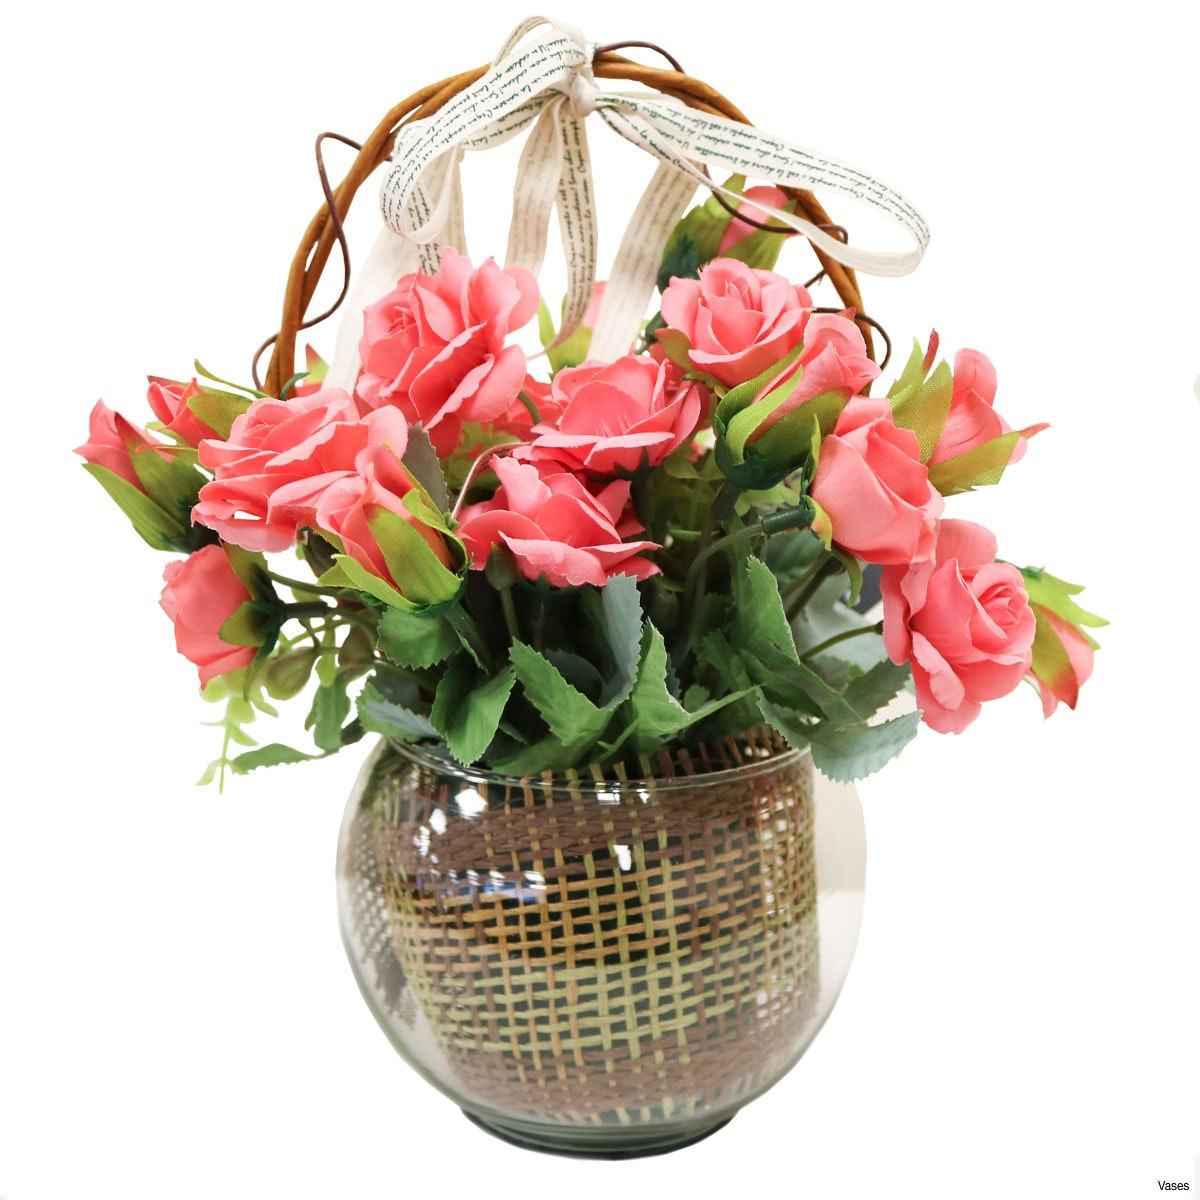 murano glass vase of yellow glass vase images bf142 11km 1200x1200h vases pink flower inside yellow glass vase images bf142 11km 1200x1200h vases pink flower vase i 0d gold inspiration of